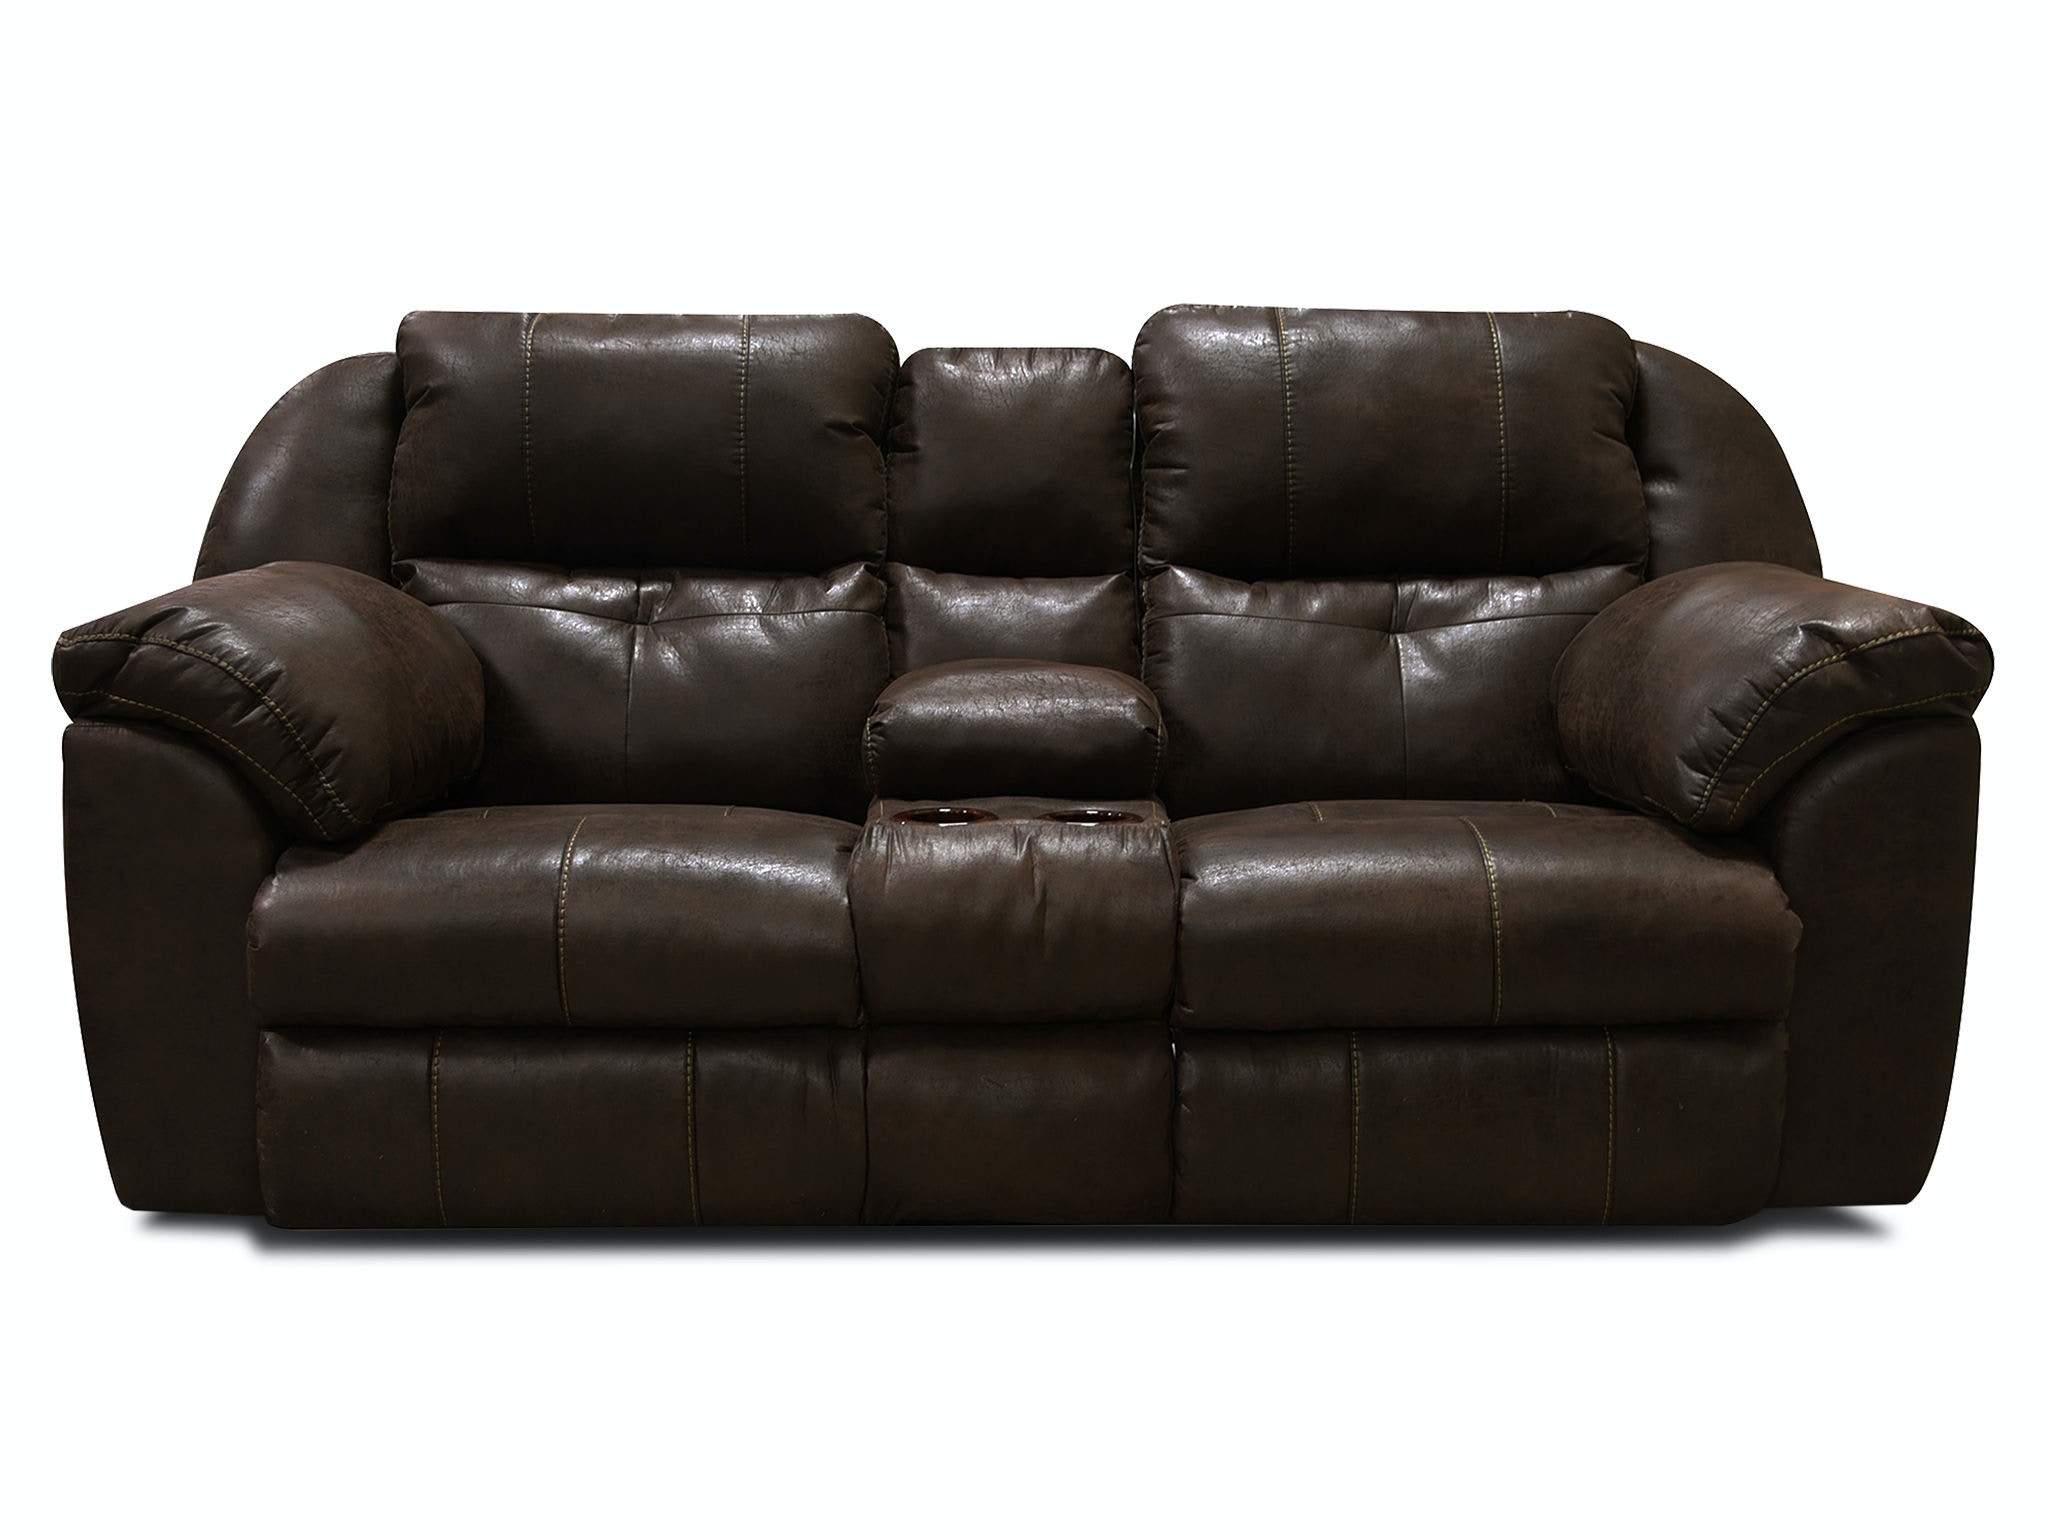 England Double Reclining Loveseat Console EZ6D85H  sc 1 st  England Furniture & England Living Room Double Reclining Loveseat Console EZ6D85H ... islam-shia.org